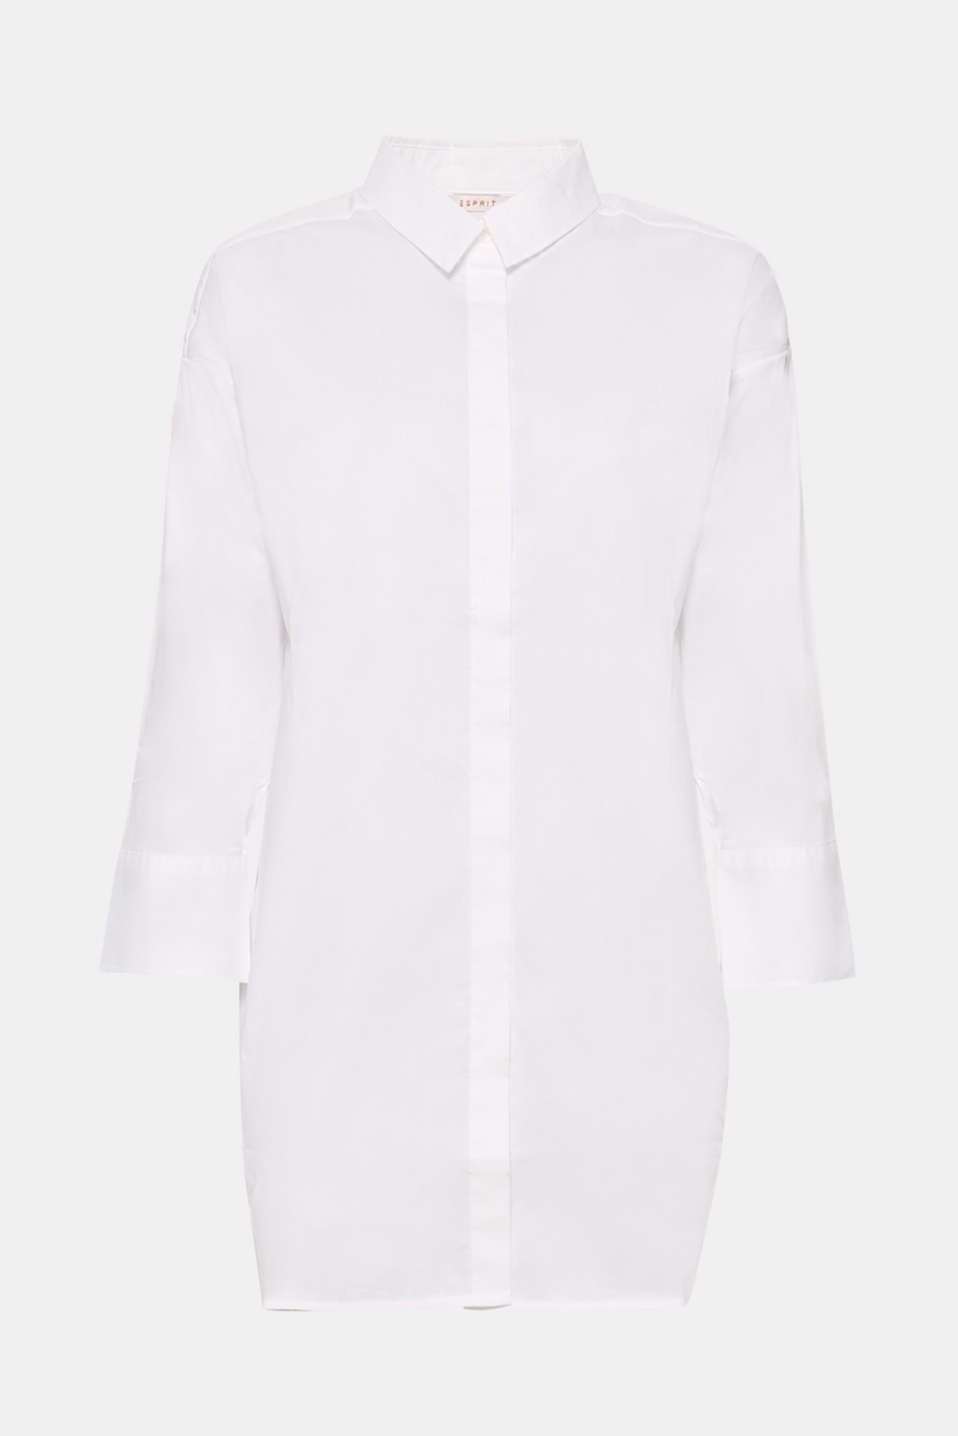 The stunning high-low hem and vented cuffs give this ultra-long shirt blouse its new look!